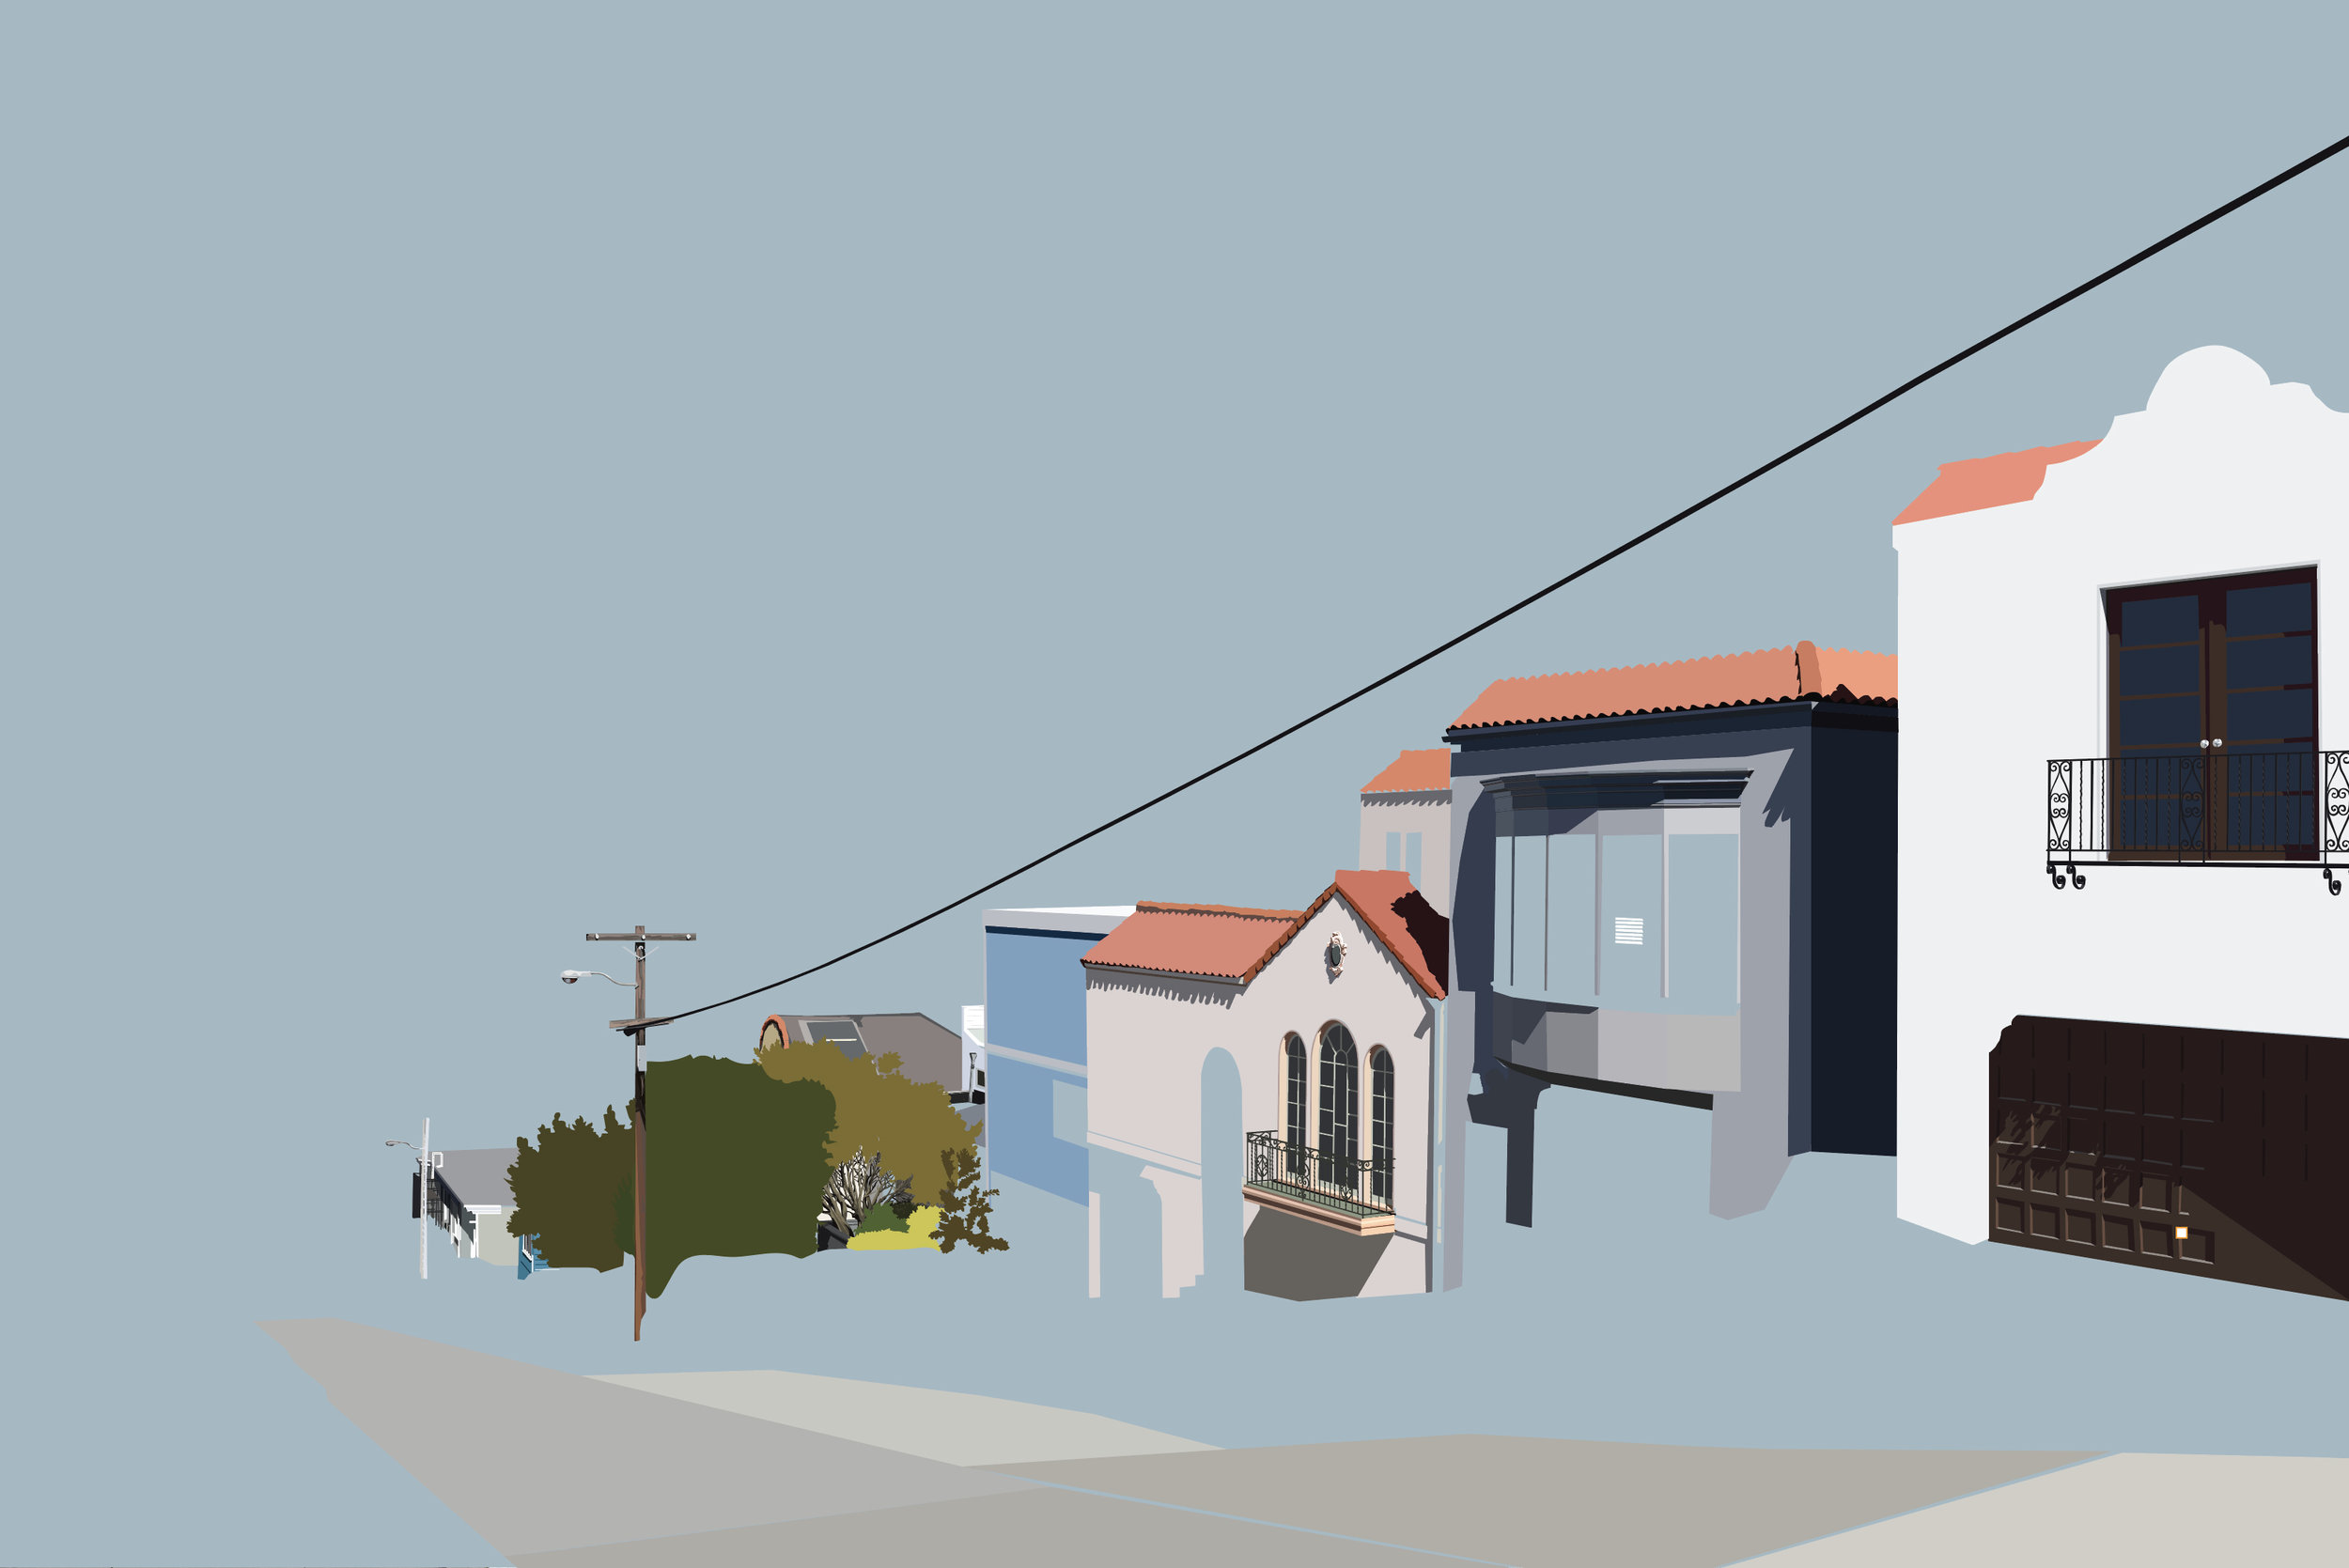 Sharing an in-progress cityscape vector project I'm working on. Houses along Collingwood in San Francisco.